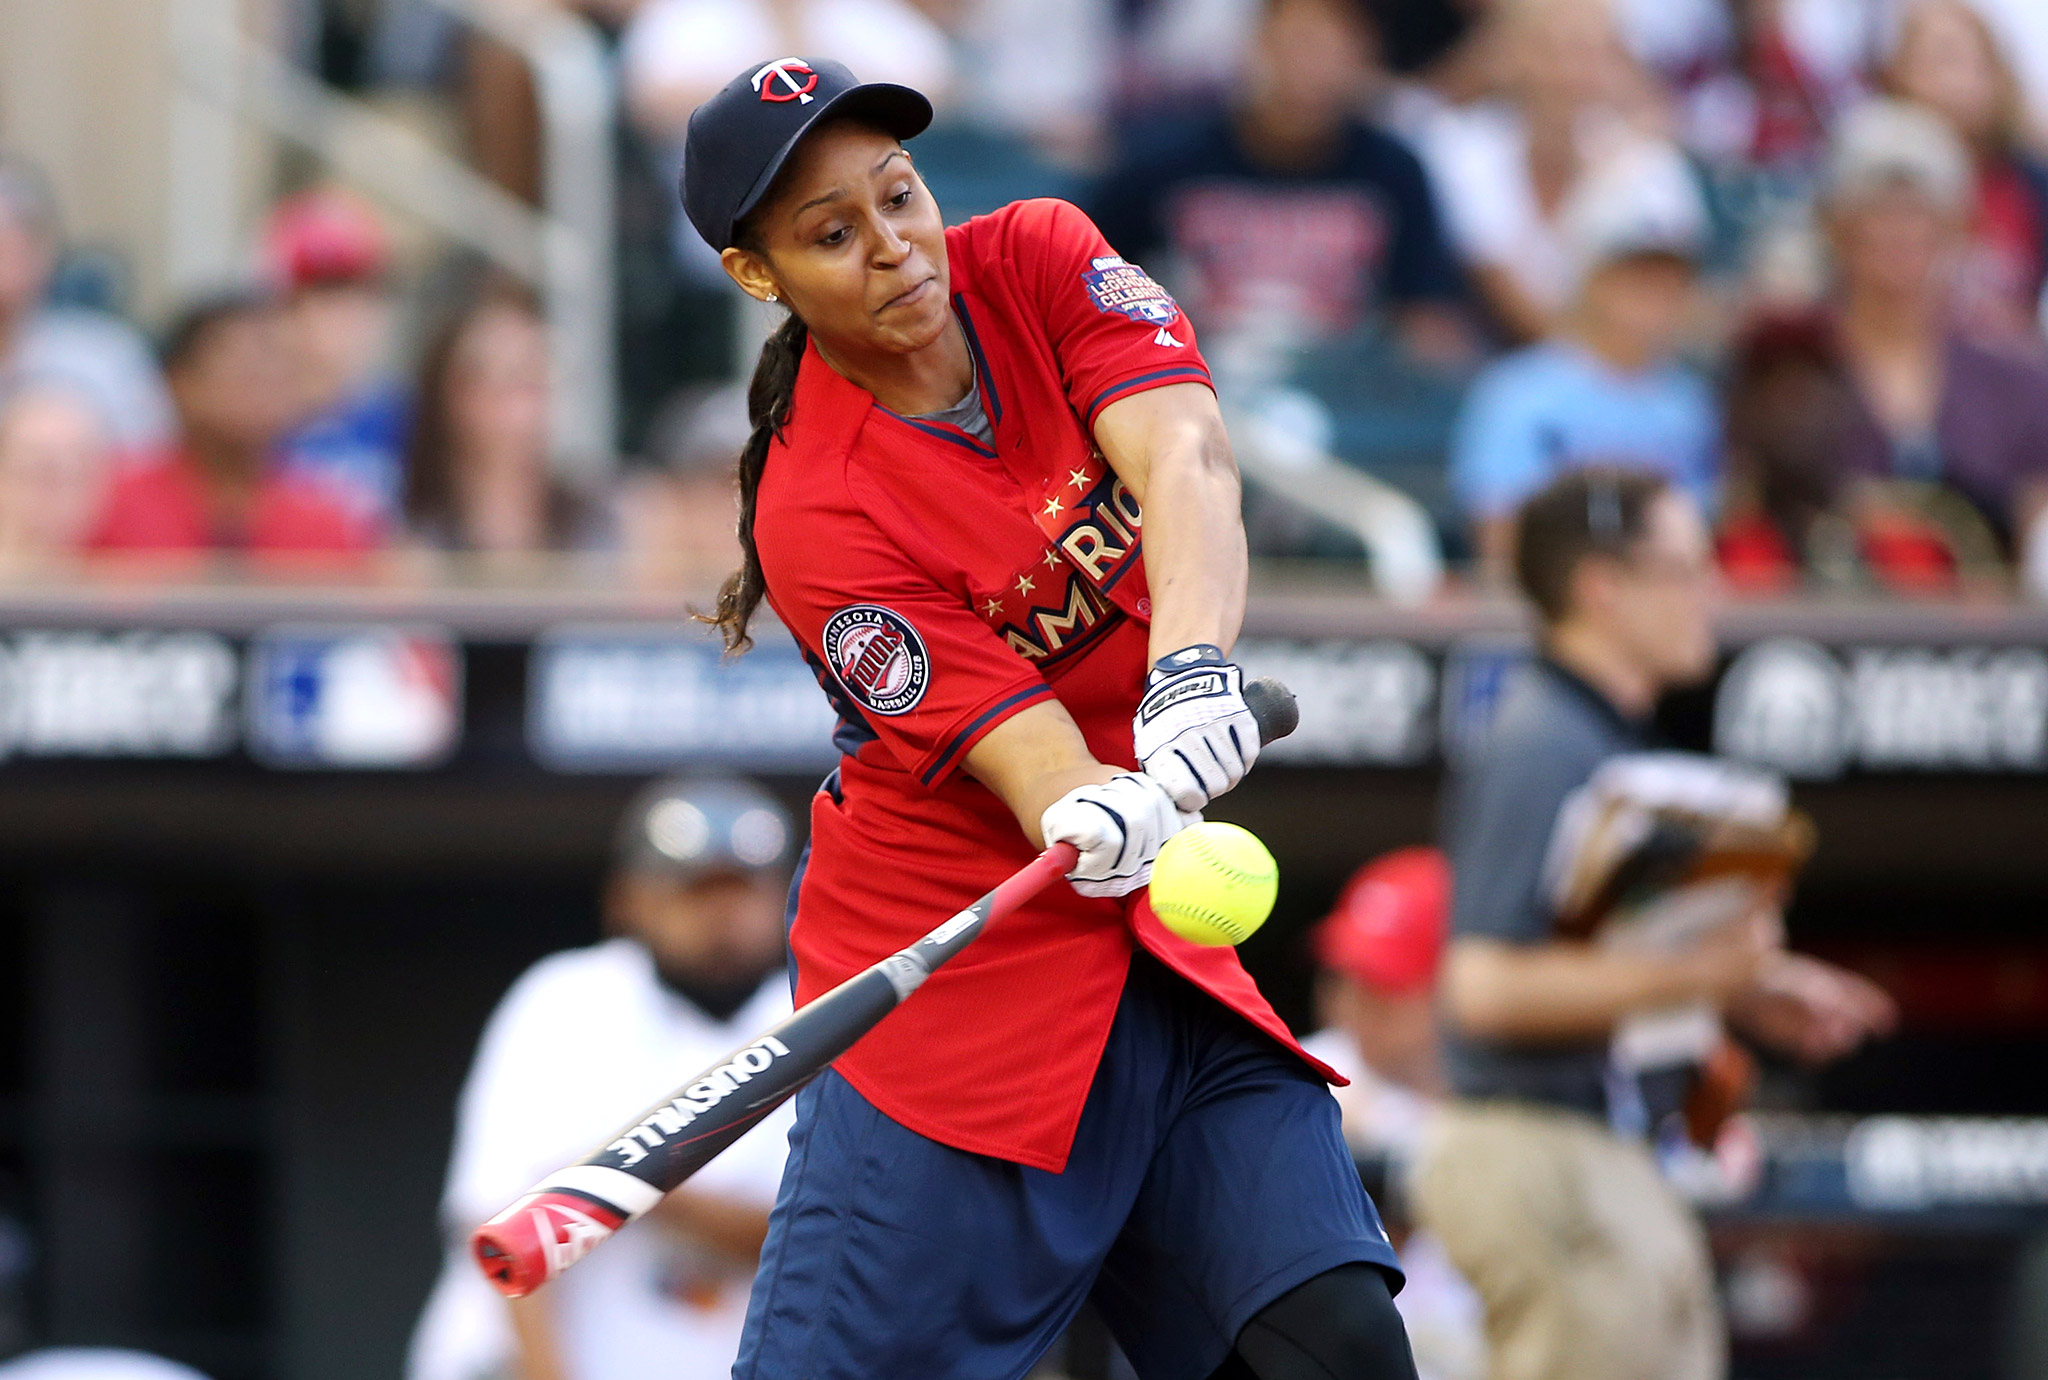 Minnesota Lynx All-Star Maya Moore at bat during the Taco Bell Legends & Celebrity softball game during Major League Baseball All-Star festivities at Target Field in Minneapolis.